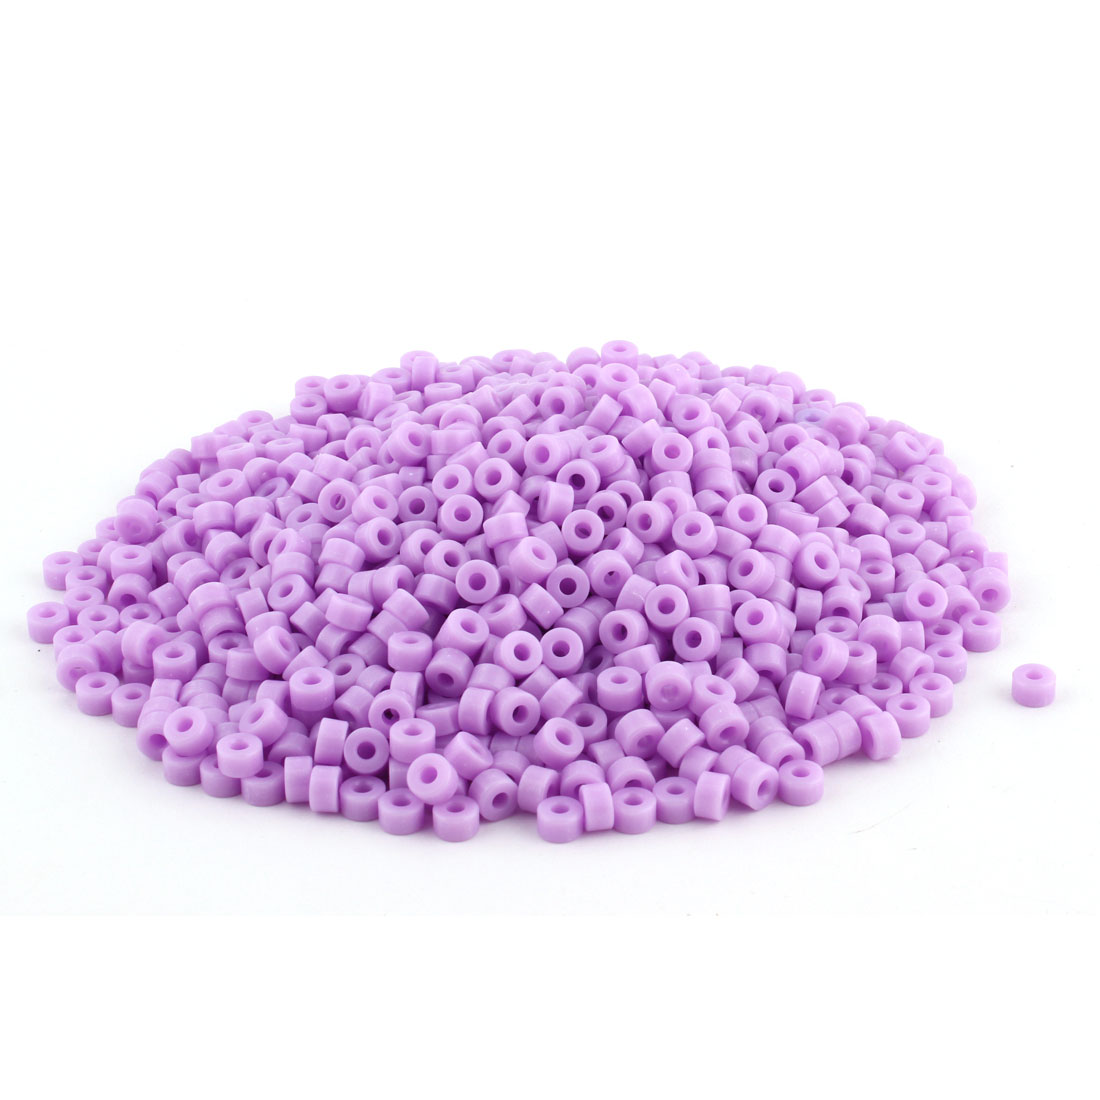 1000 Pcs Plastic Column Insulated Spacer Washer Standoff Pillars Support Lilac